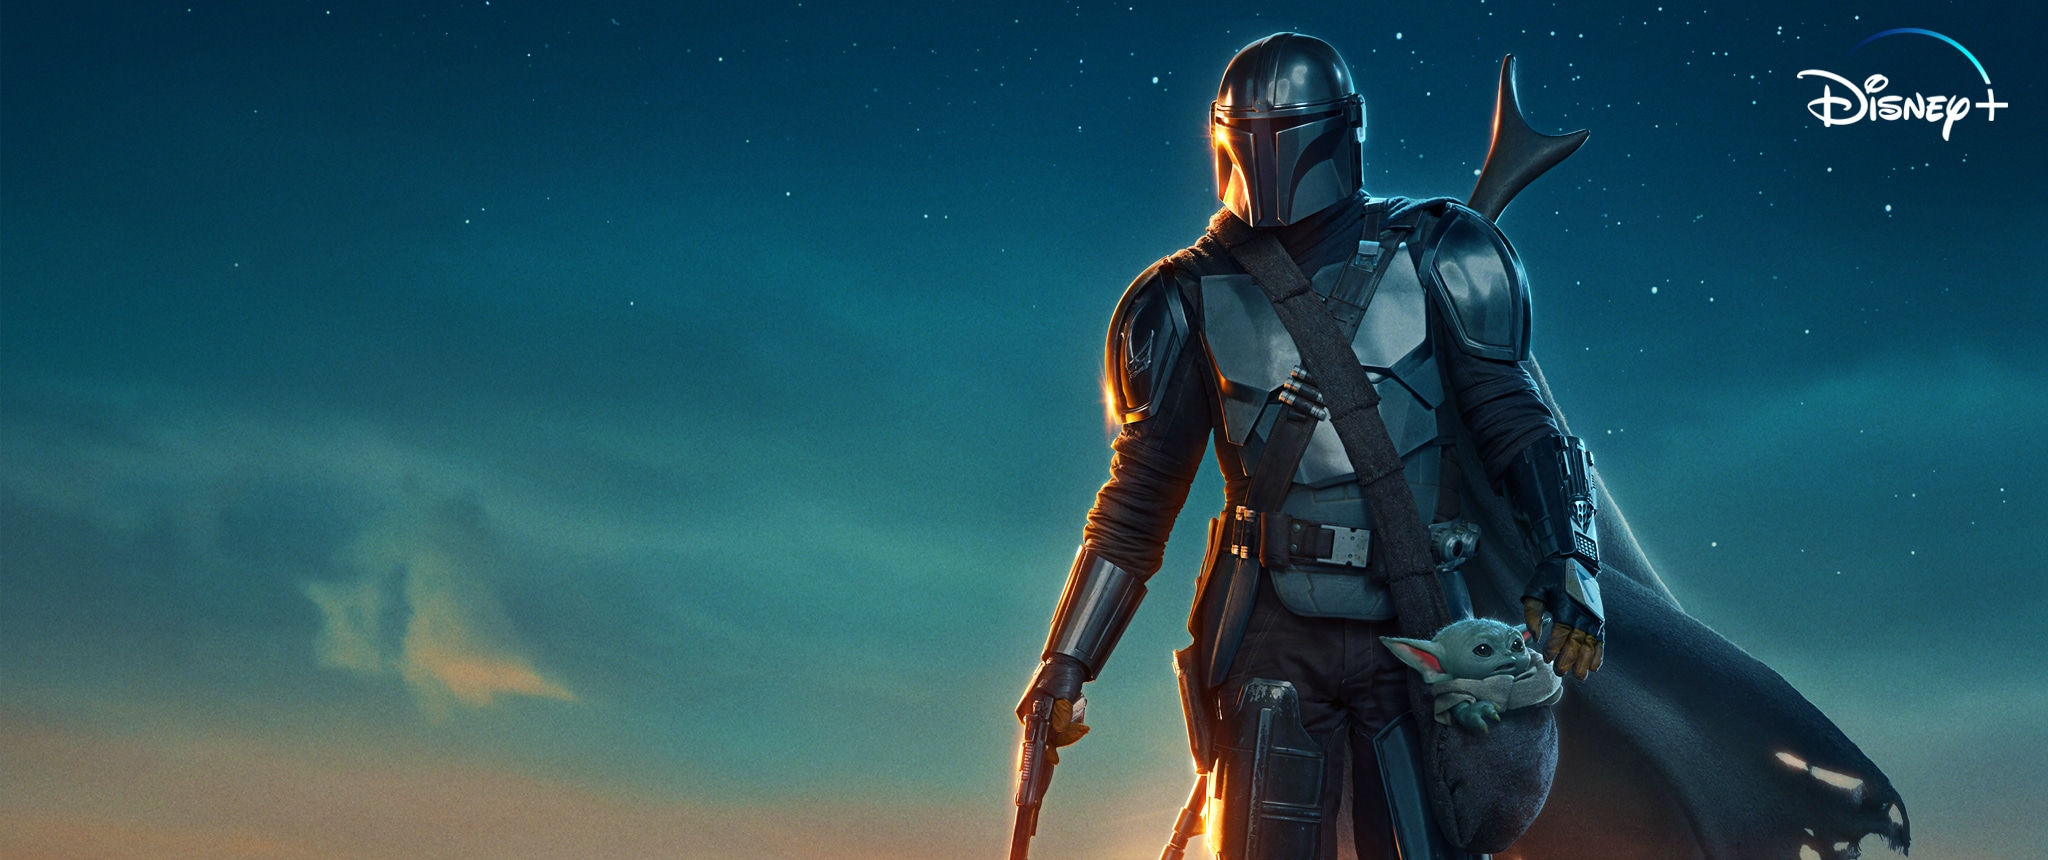 Hero - Disney+ - The Mandalorian Takeover - MOBILE ONLY HERO